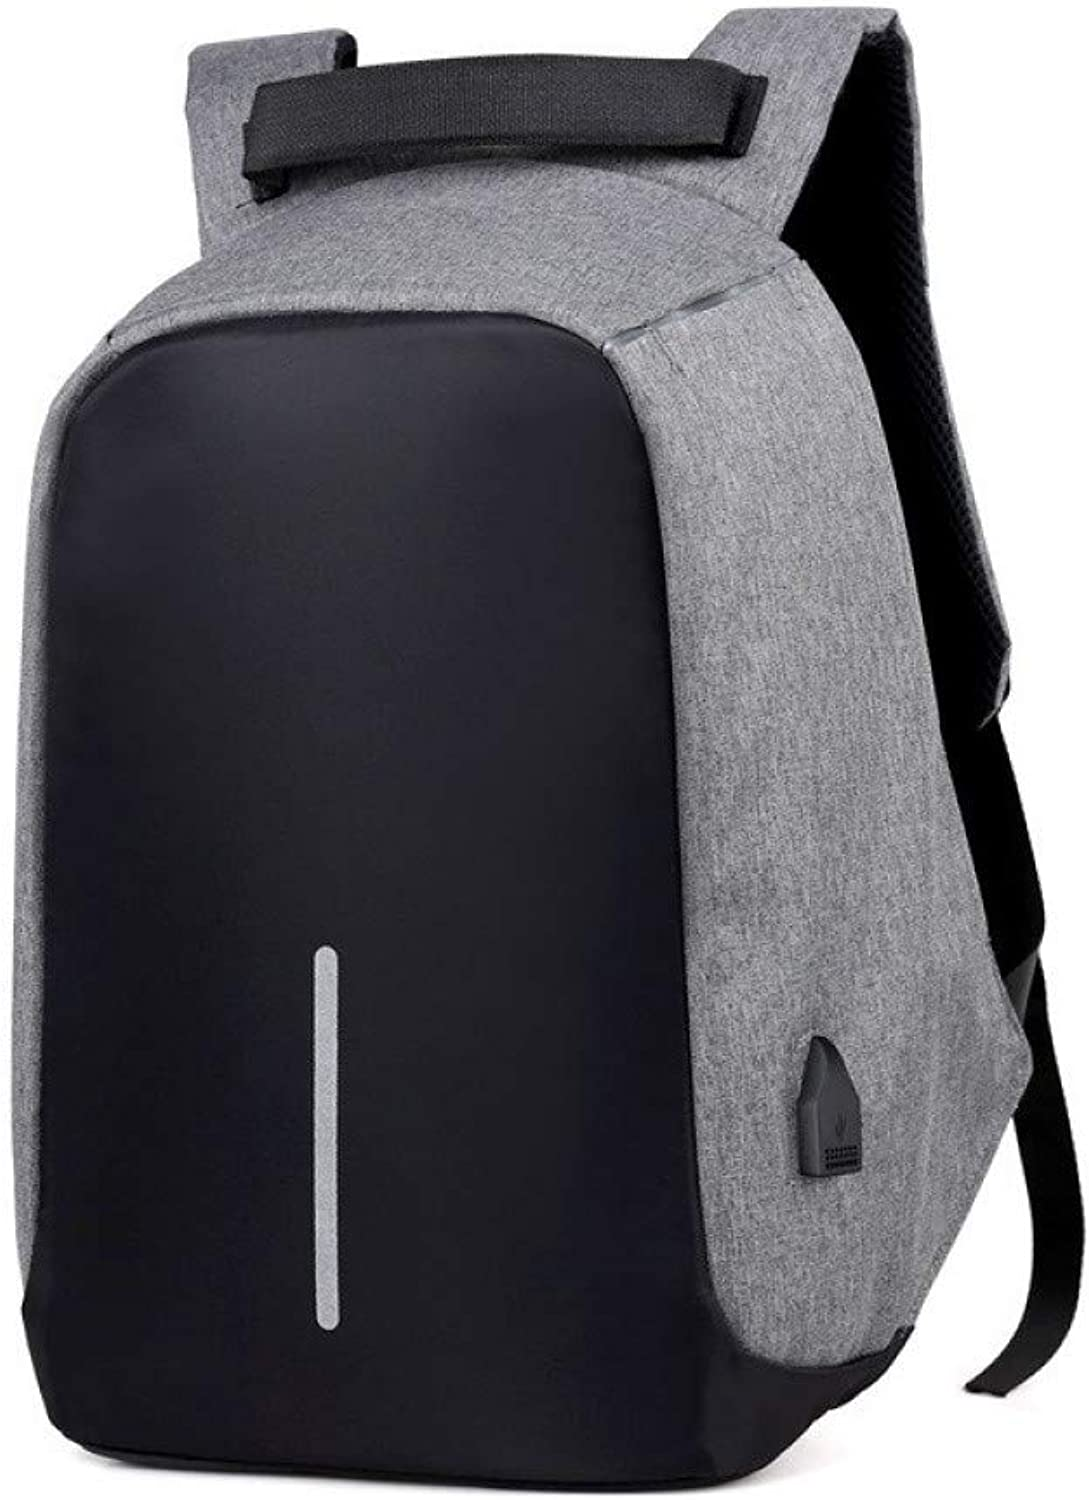 HUYANNABAO Backpack Men's High Capacity Business USB Charging Men's Waterproof Anti-Theft Laptop Backpack College College Backpack